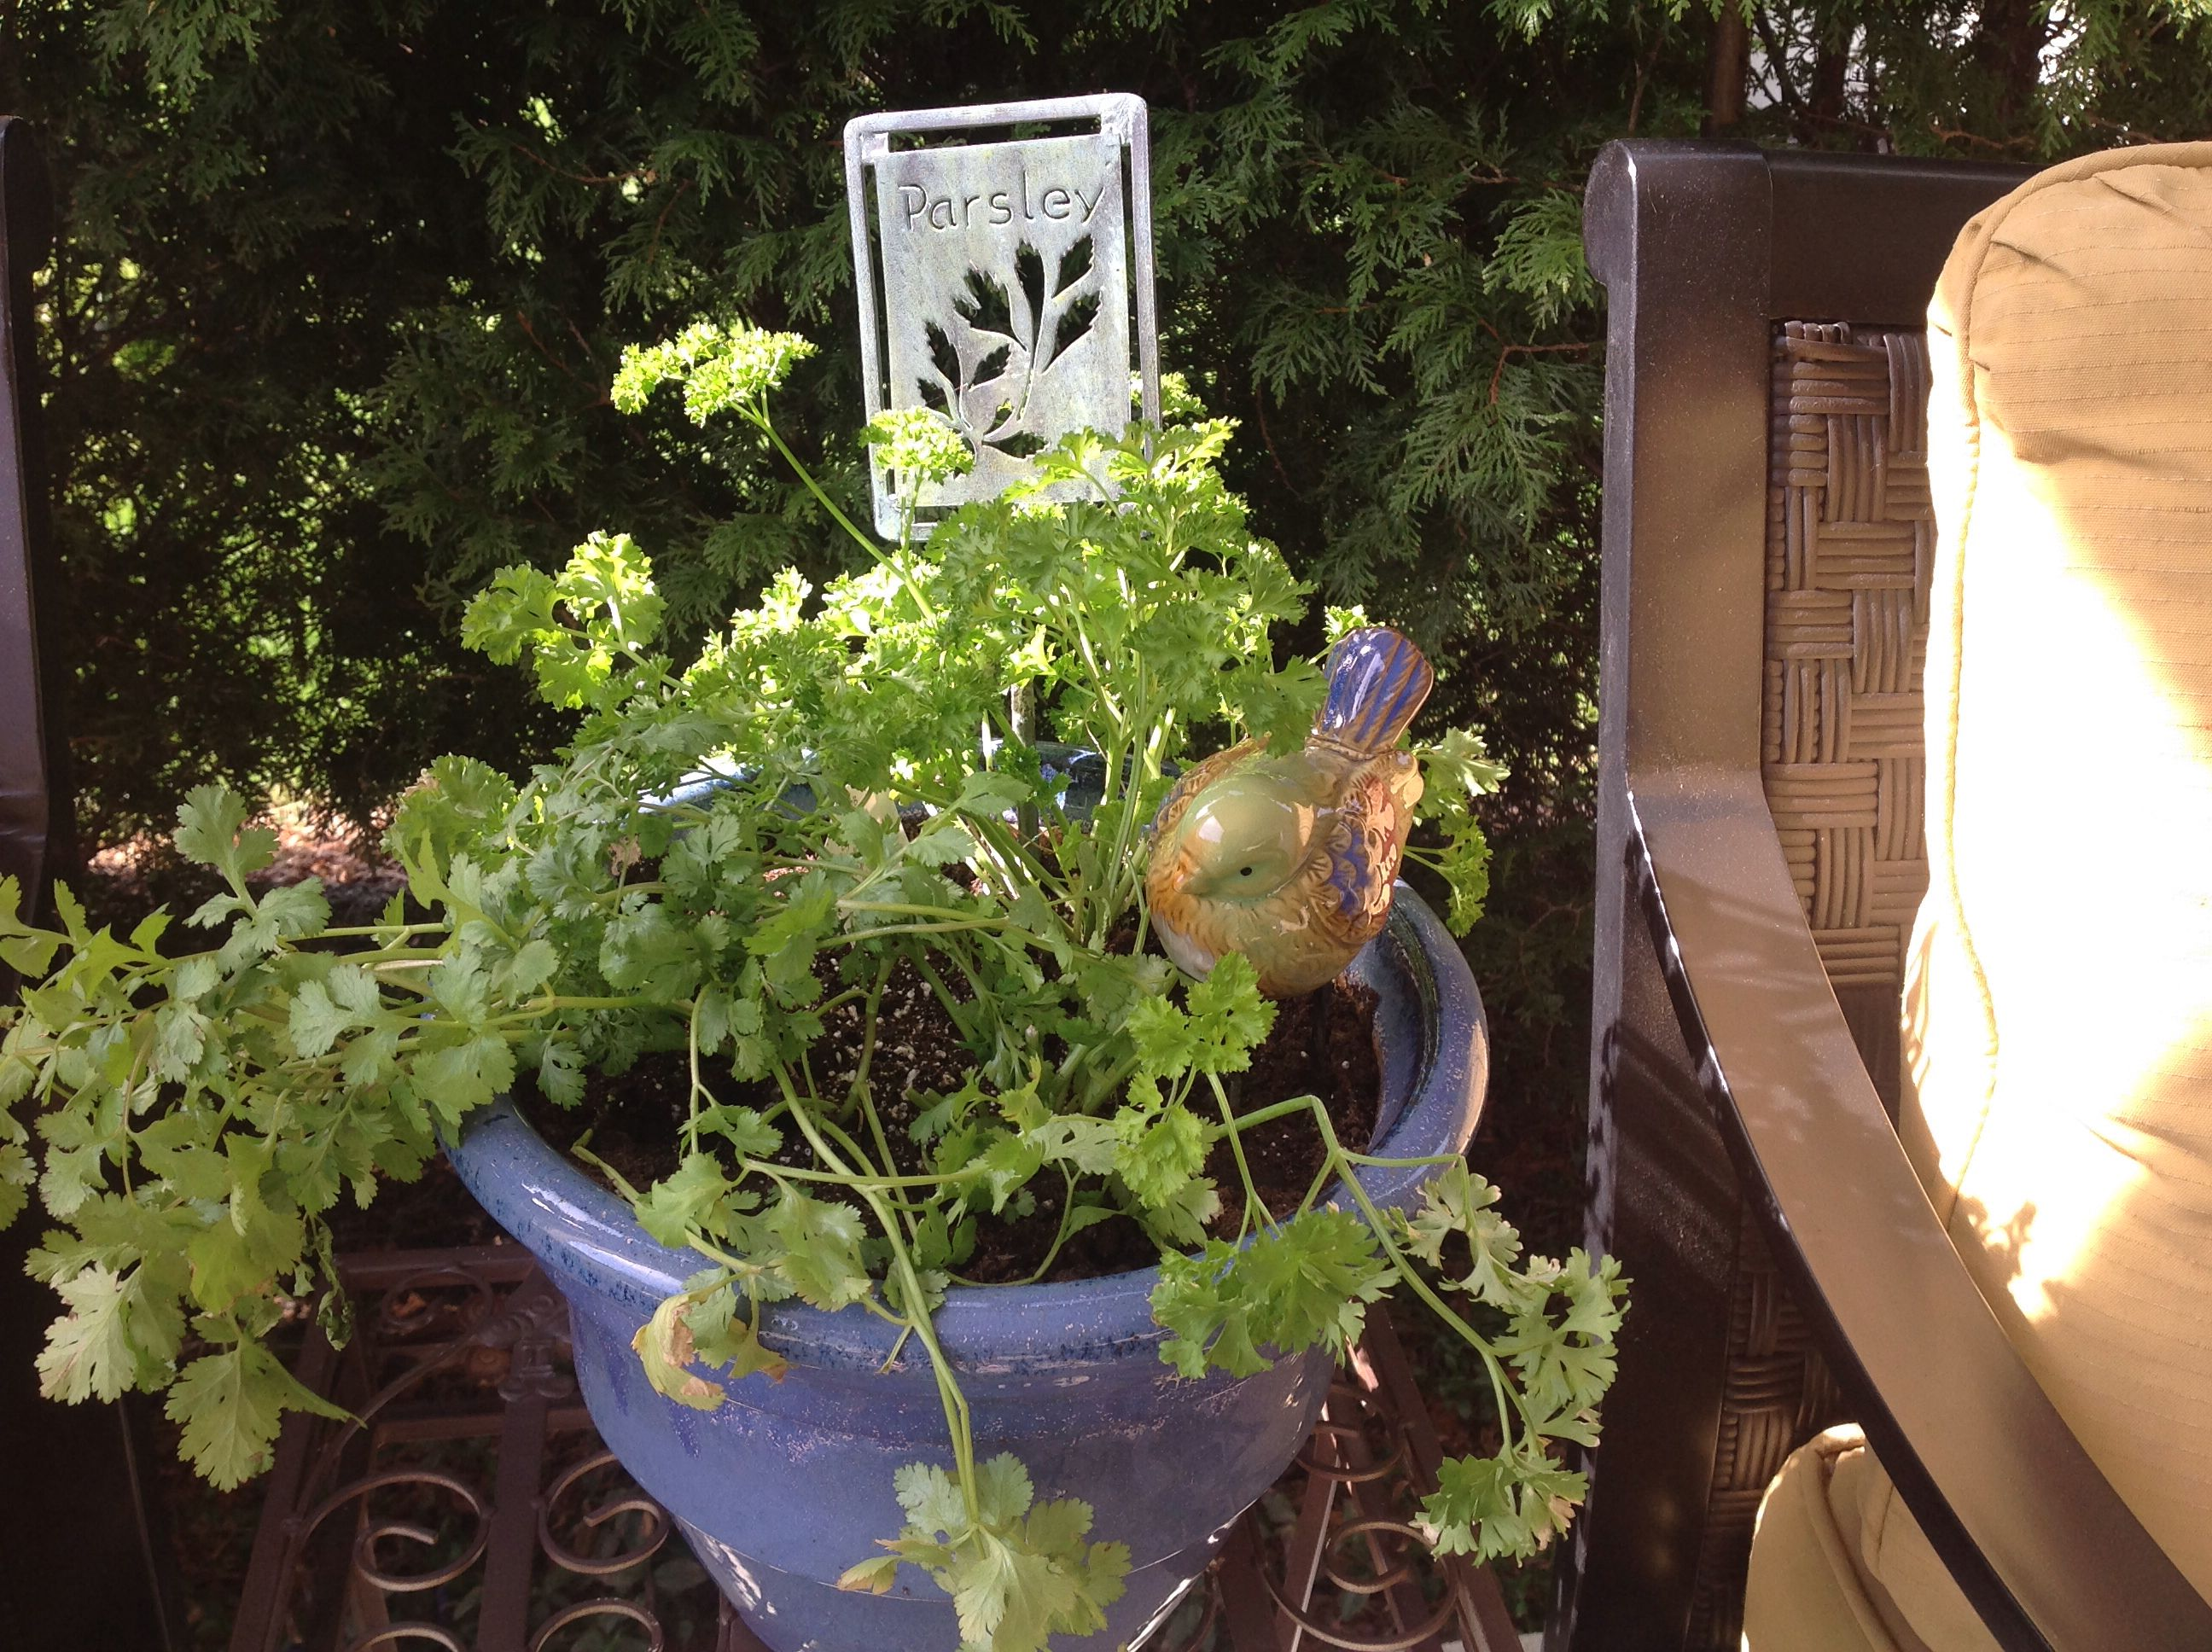 Planted some herbs today....thought the bird just needed to be there !